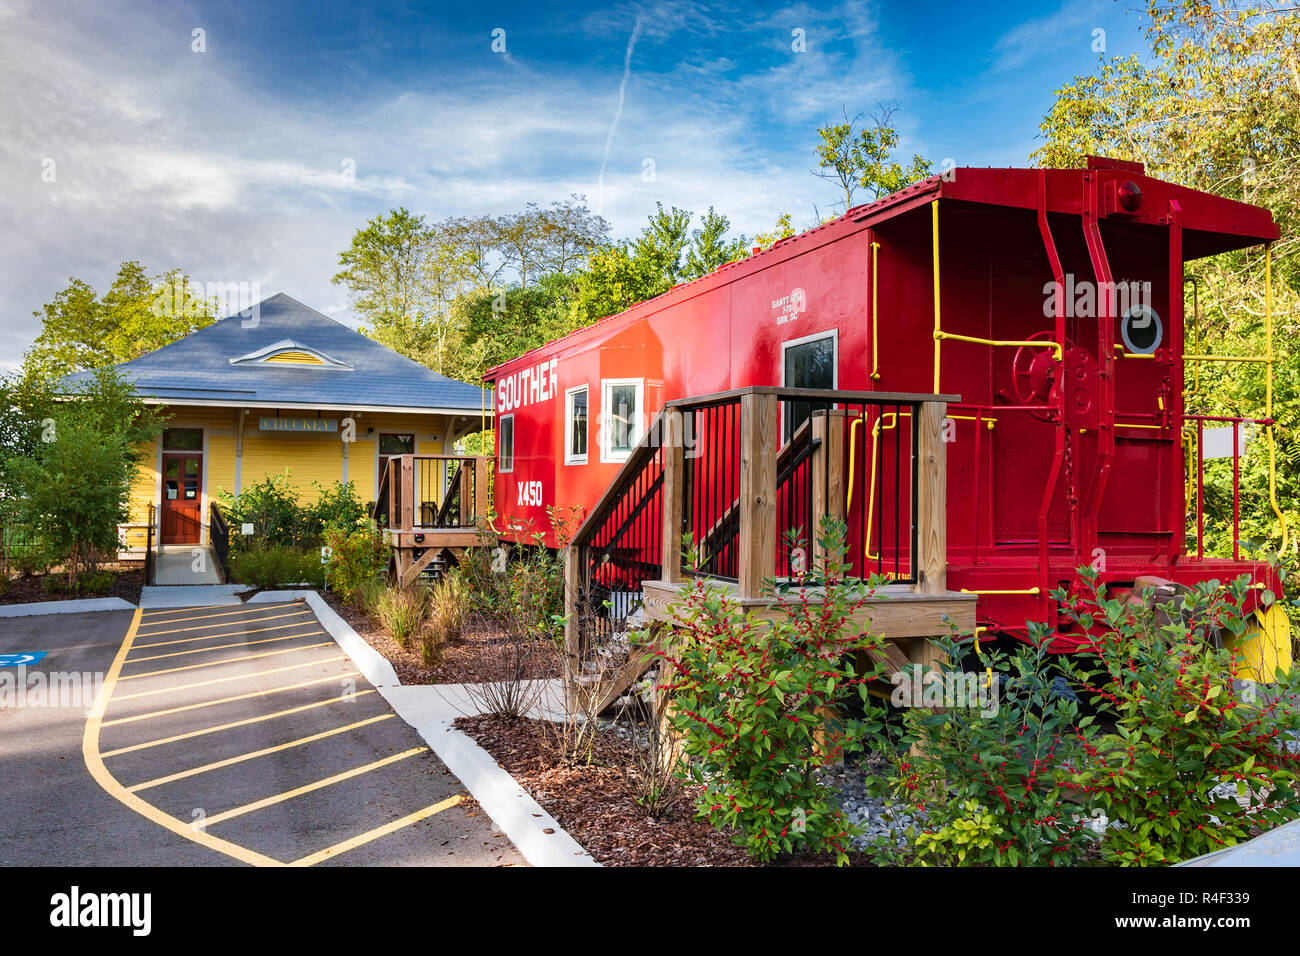 JONESBOROUGH, TN, USA-9/29/18:  The relocated Chuckey train depot and a caboose from the southern railway are displayed in historic Jonesborough. - Stock Image